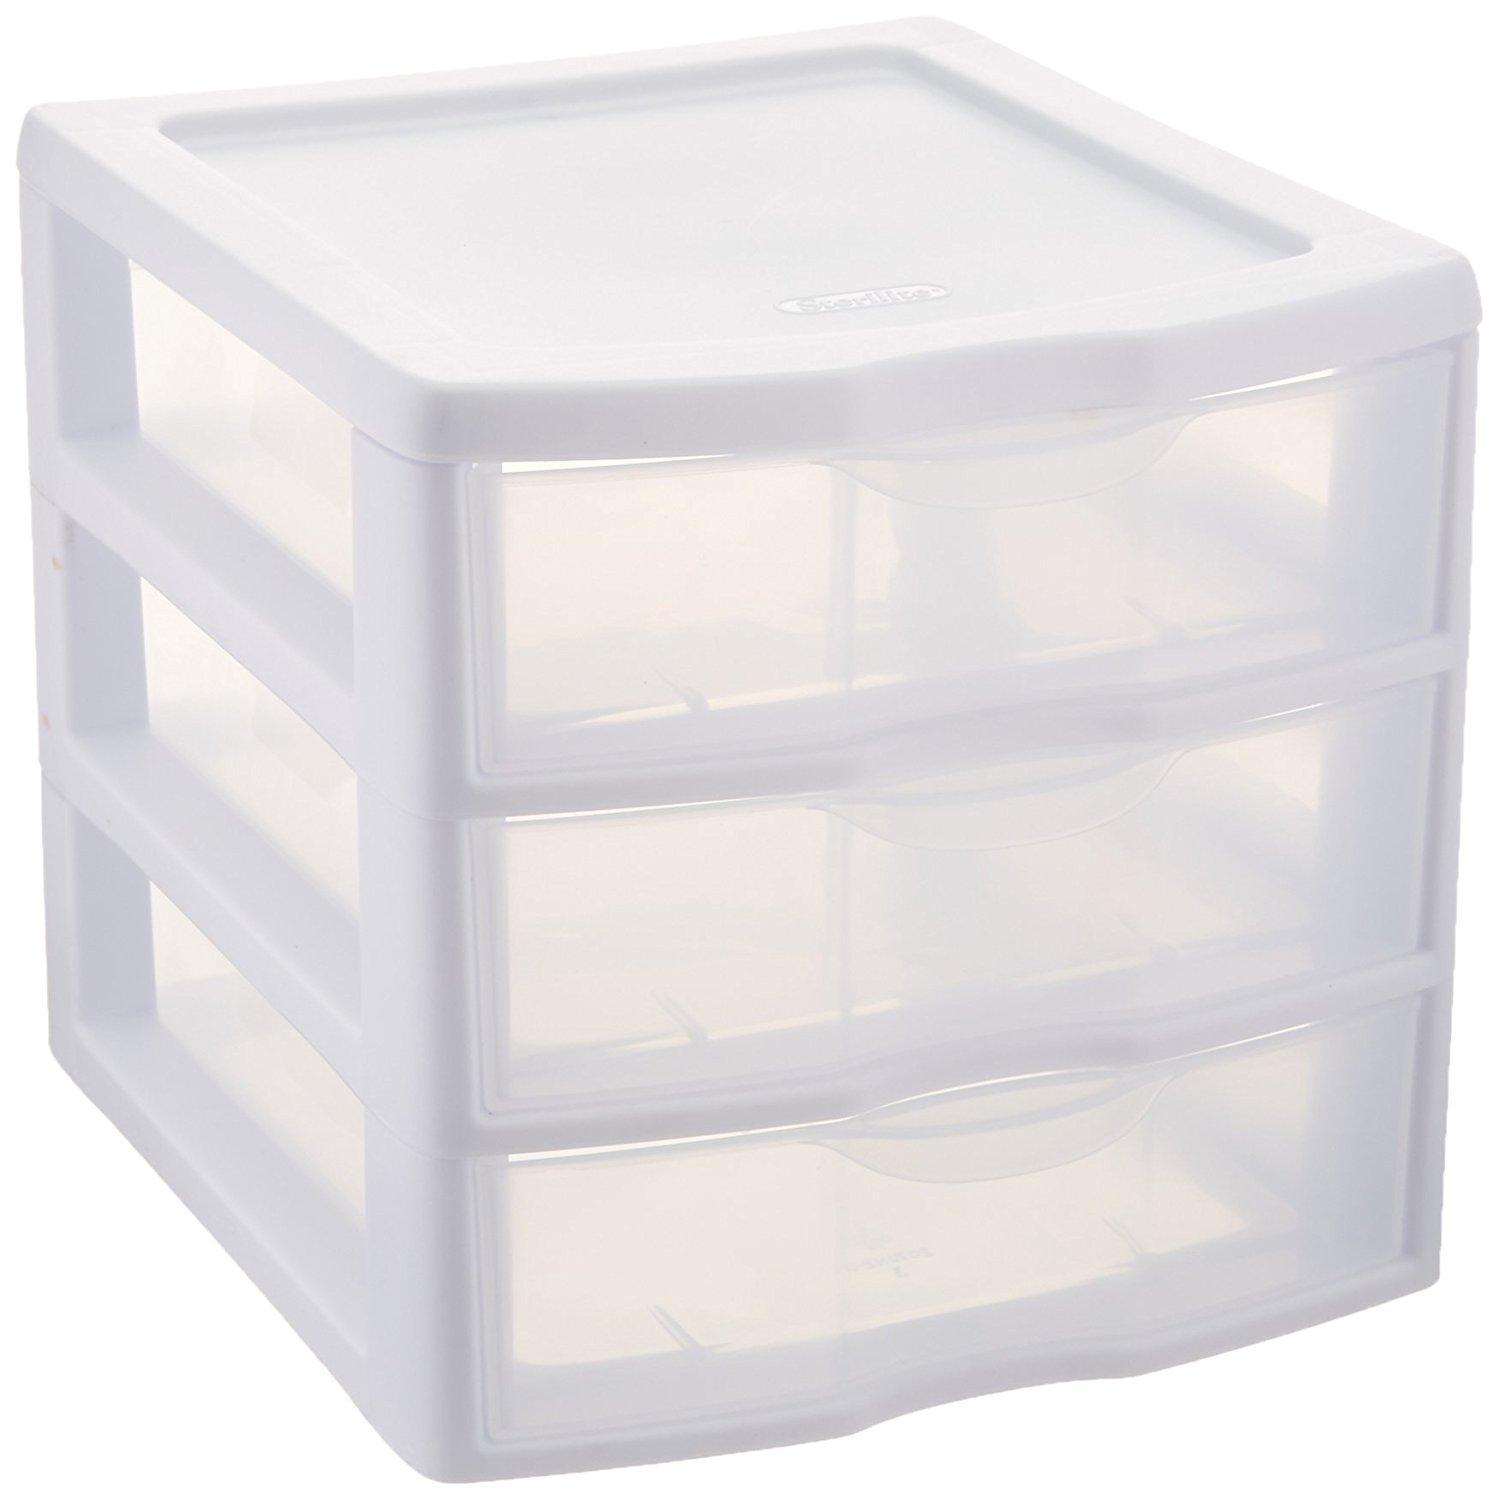 Plastic Storage Drawers Amazon Com Sterilite Clearview  Storage Drawer Organizer Home U